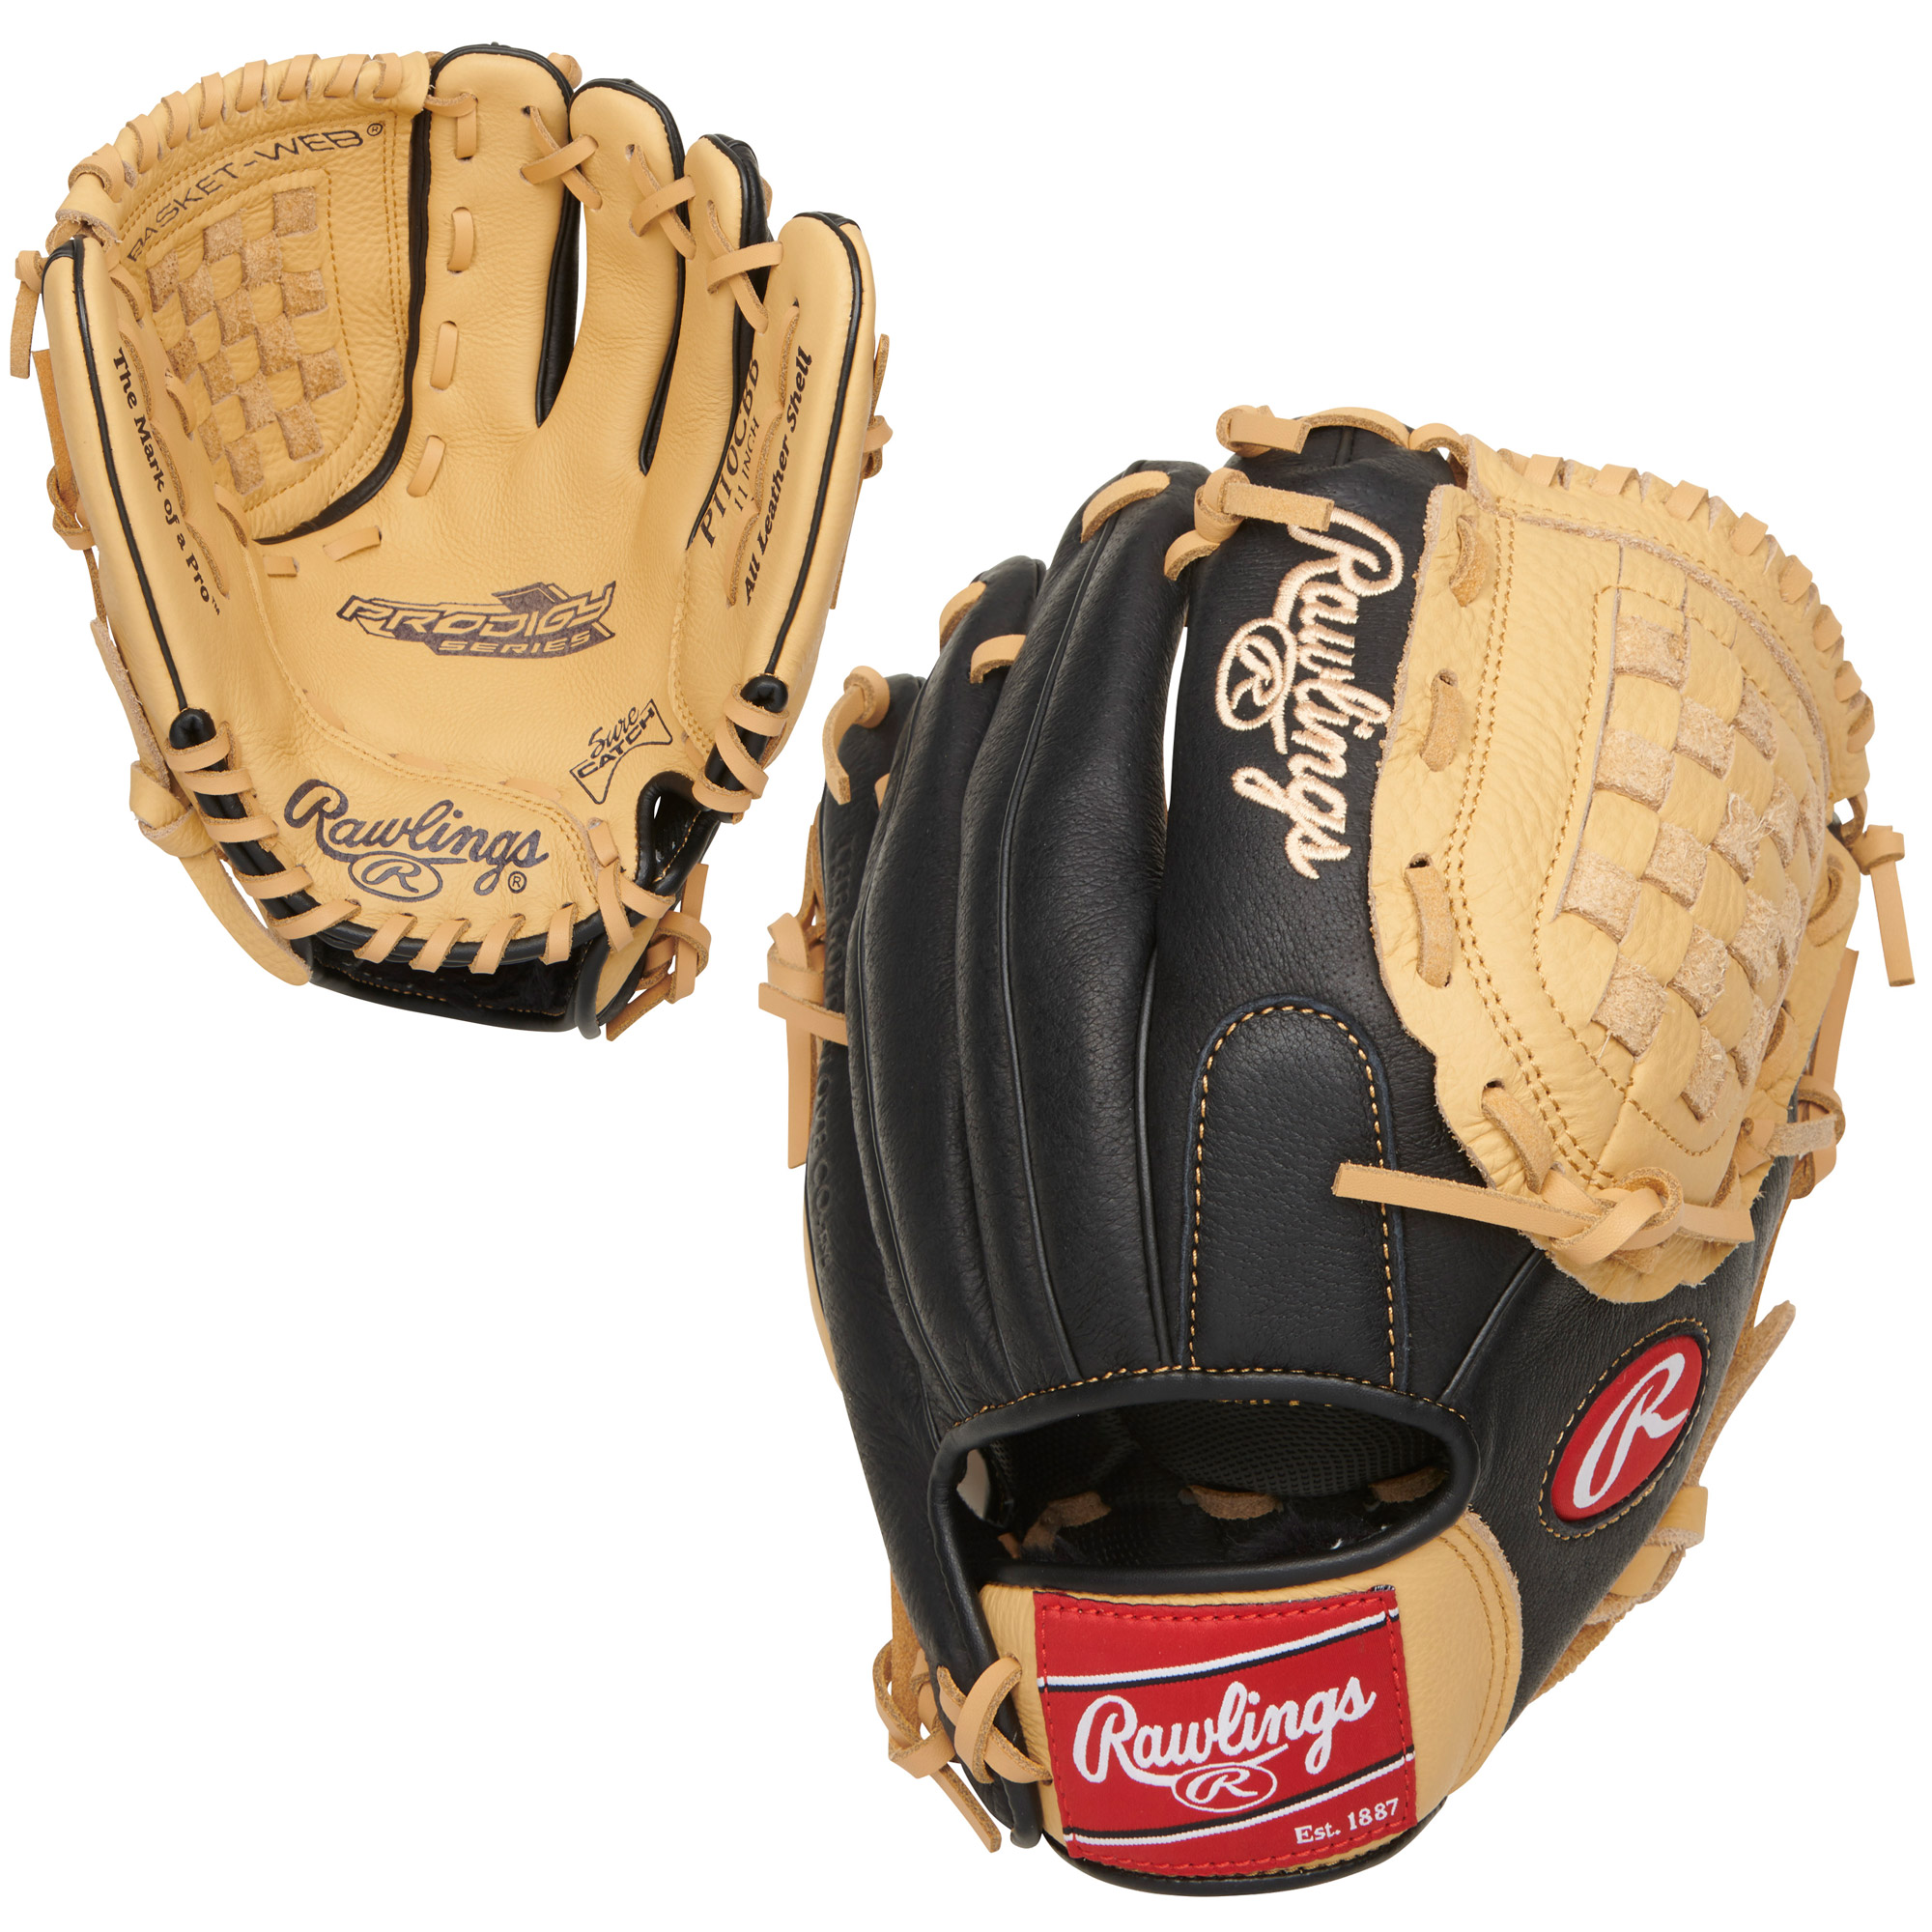 "P110CBB Rawlings Prodigy Series Ball Glove Basket Web 11"" - Regular THUMBNAIL"